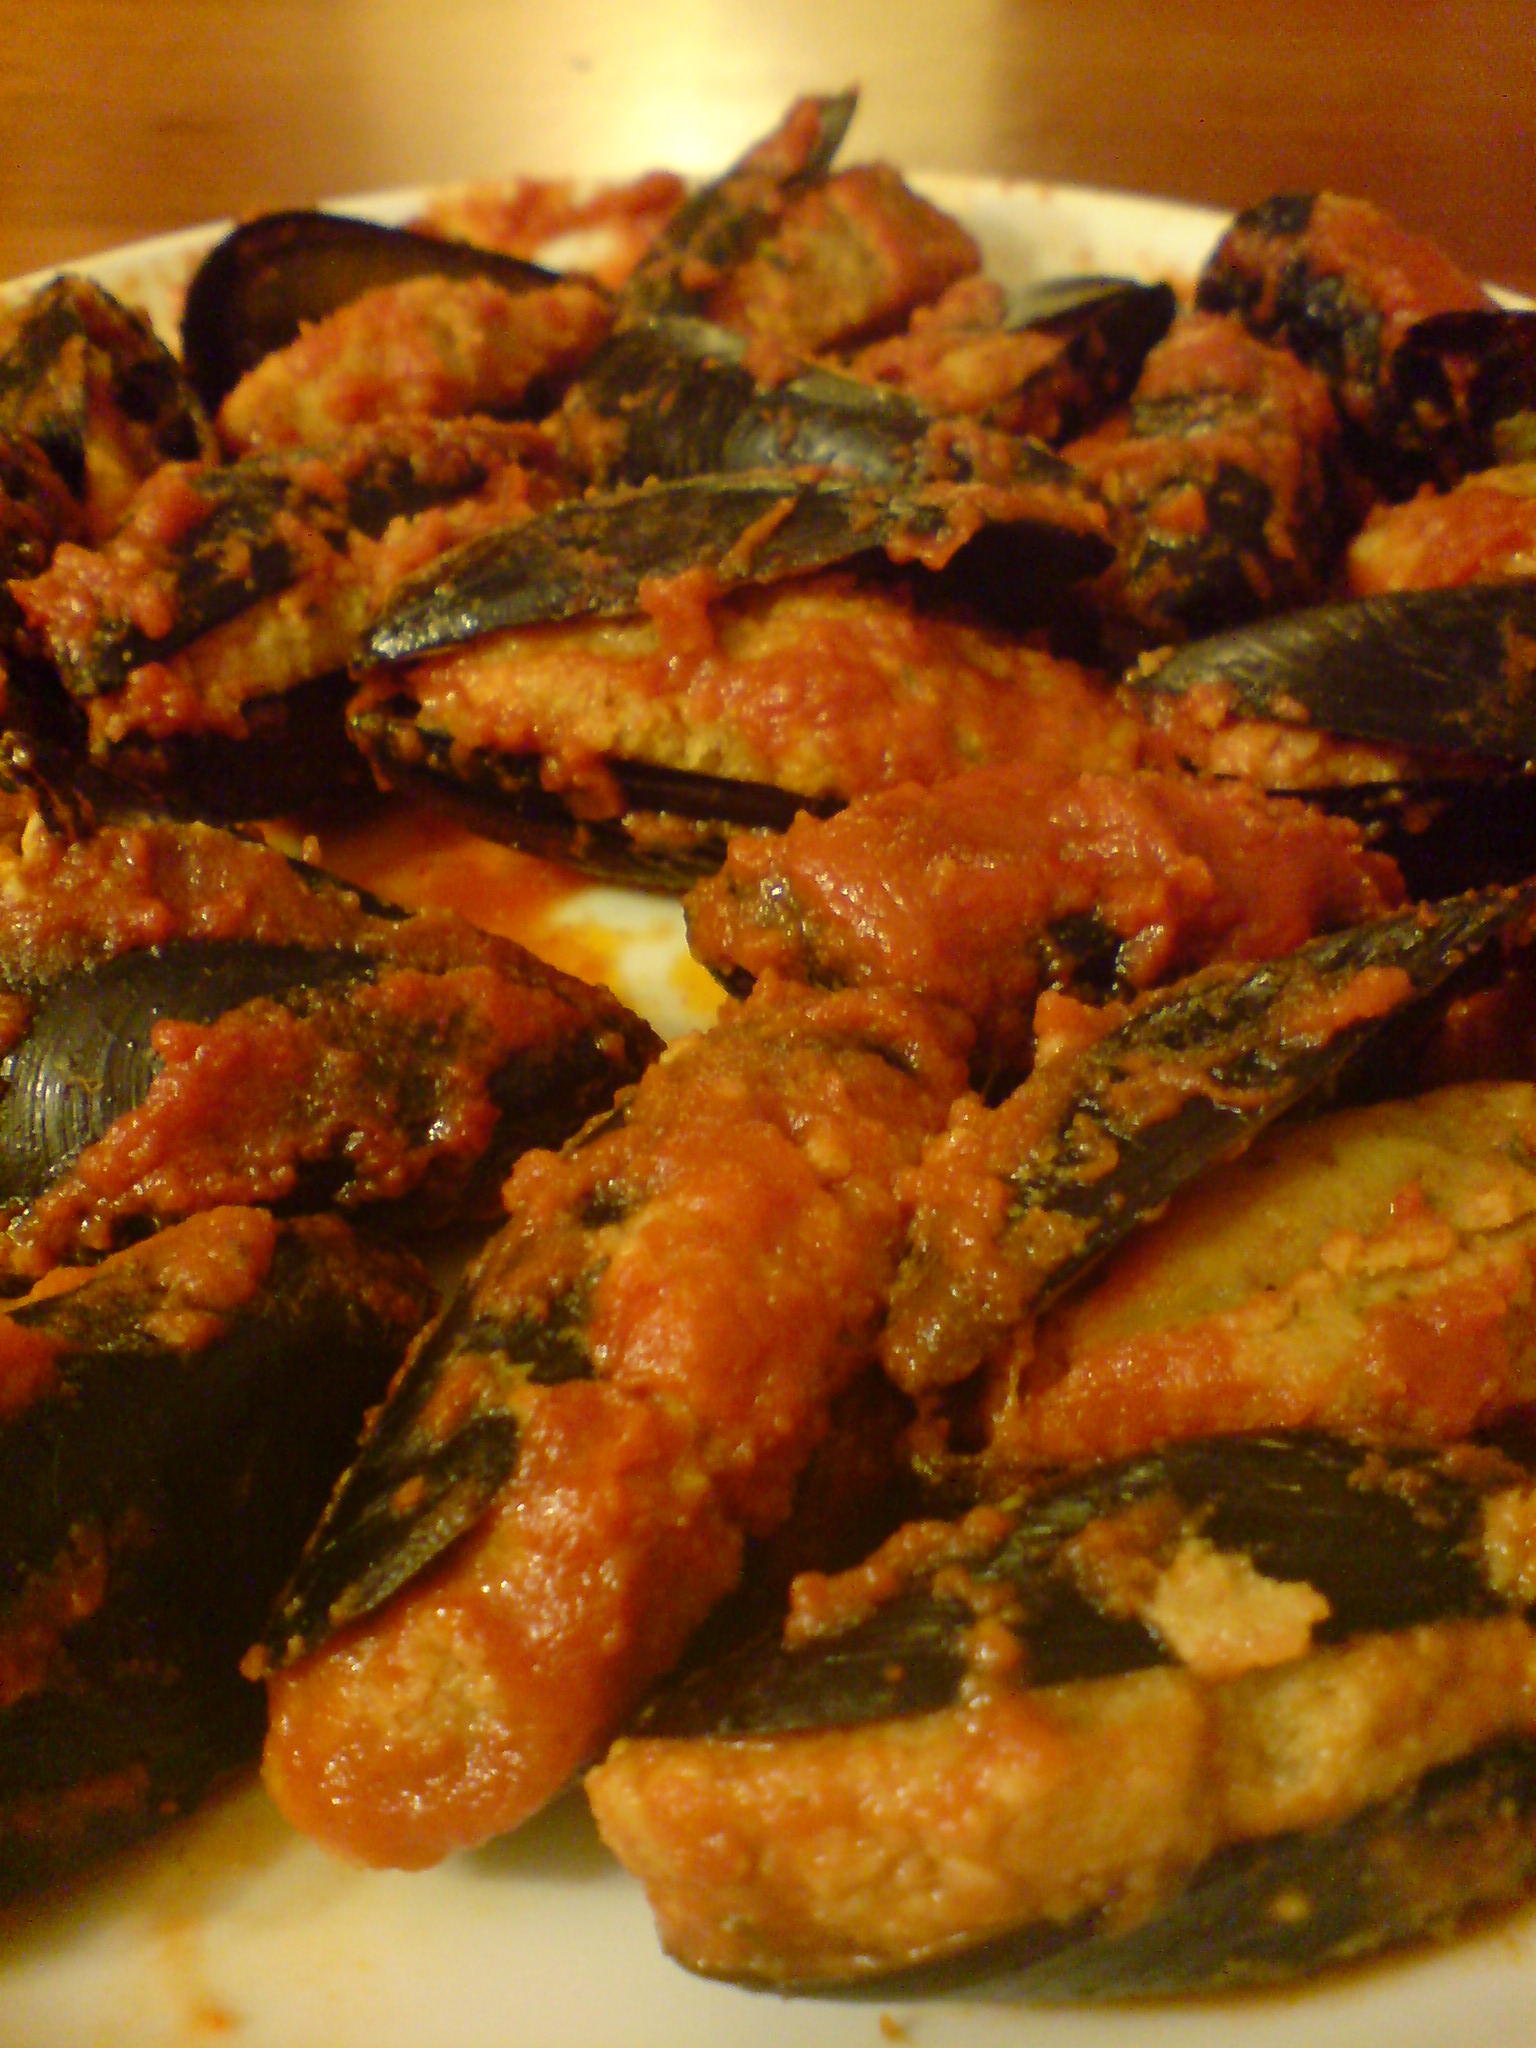 Stuffed mussels finished dish